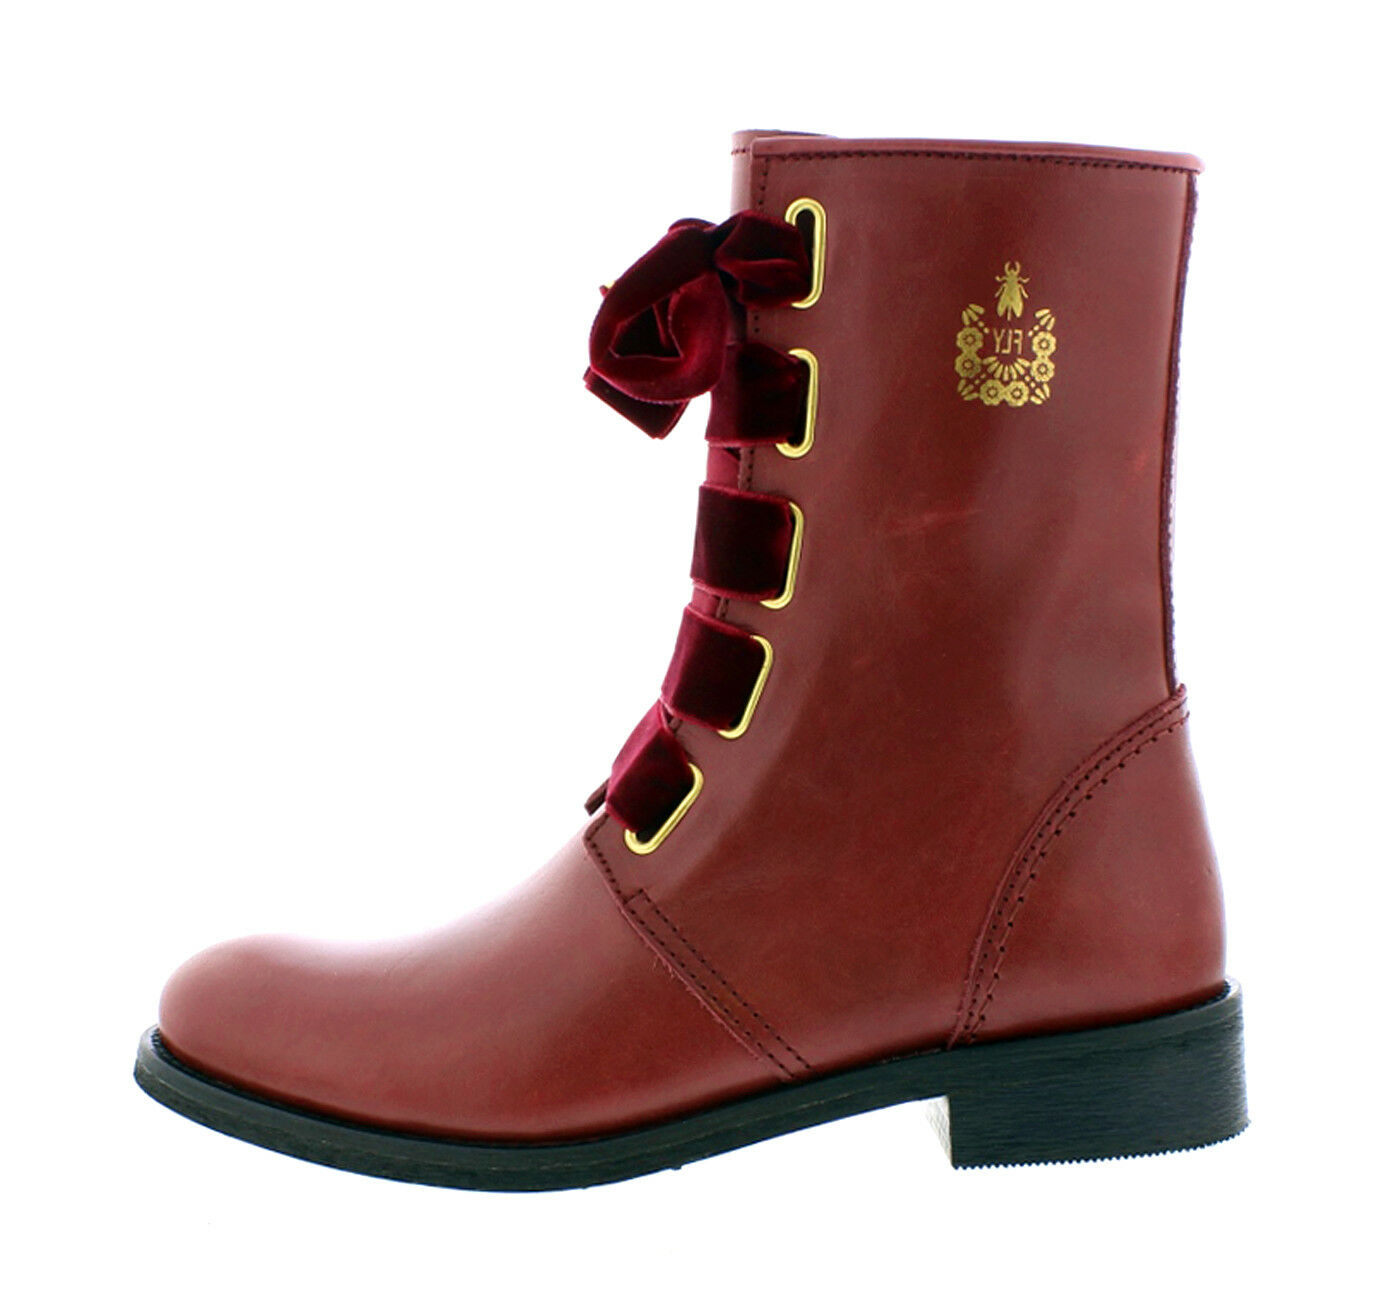 Fly London NEW Cristina Rodrigues Dwell 01 wine burgundy leather ankle boots 3-9